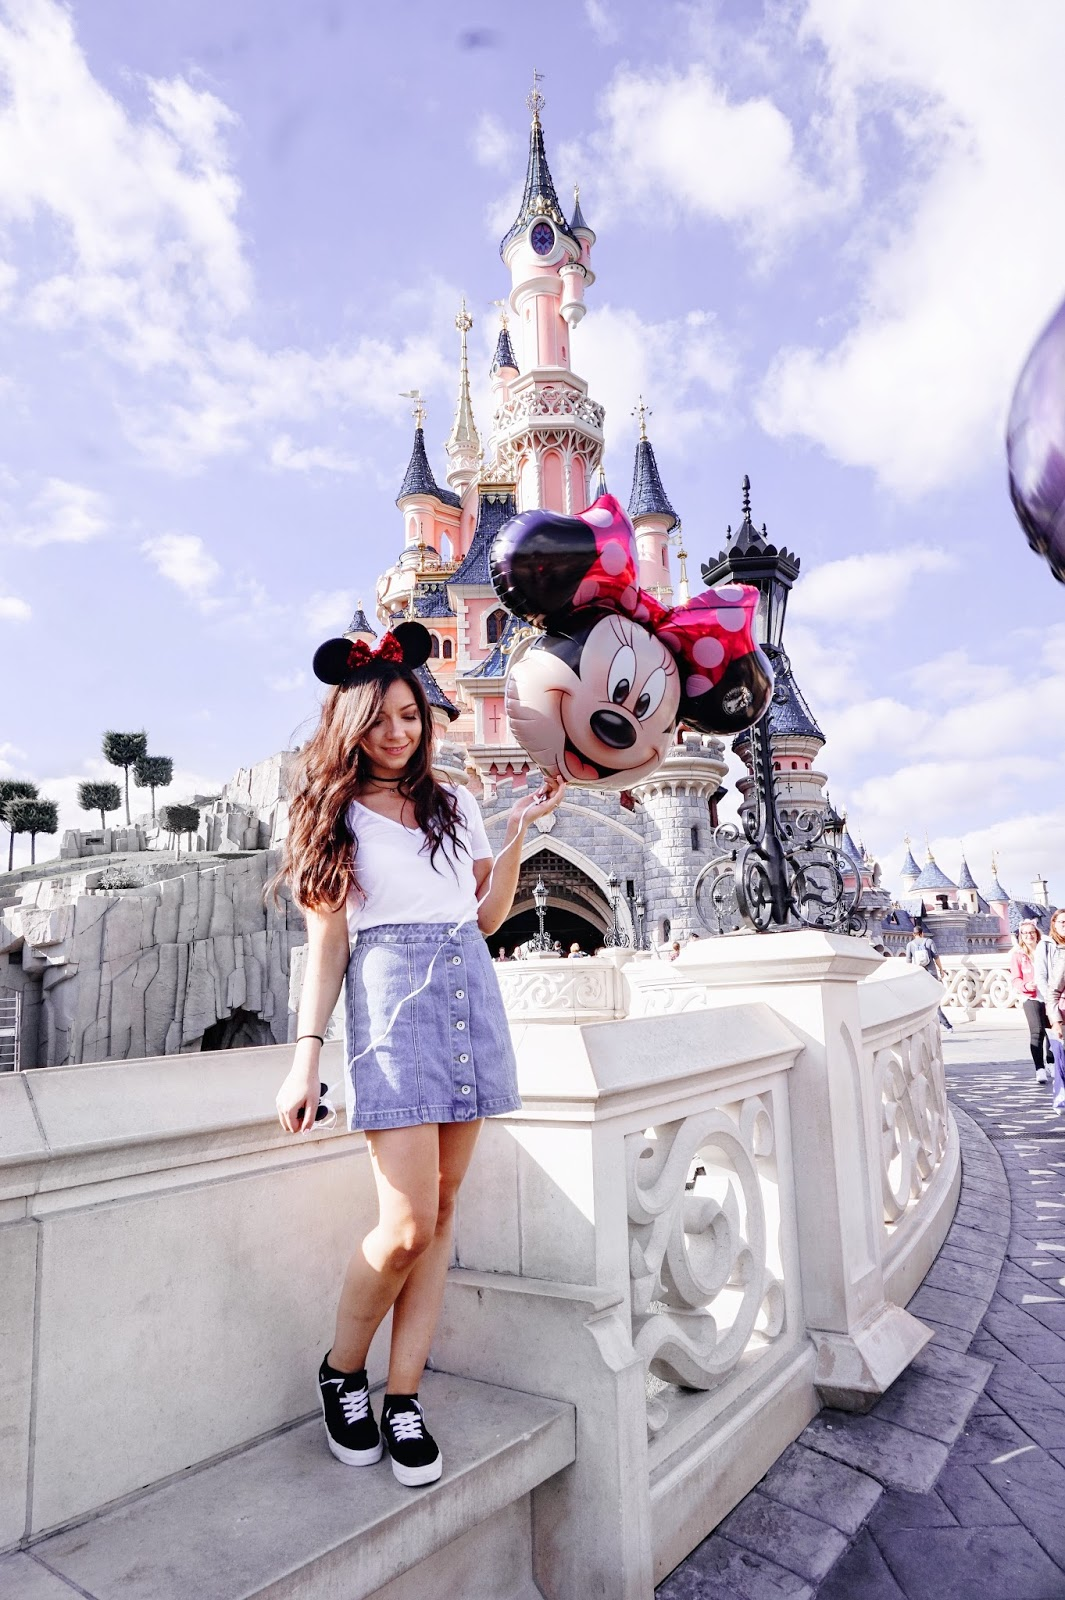 The Most Instagrammable Places At Disneyland Paris